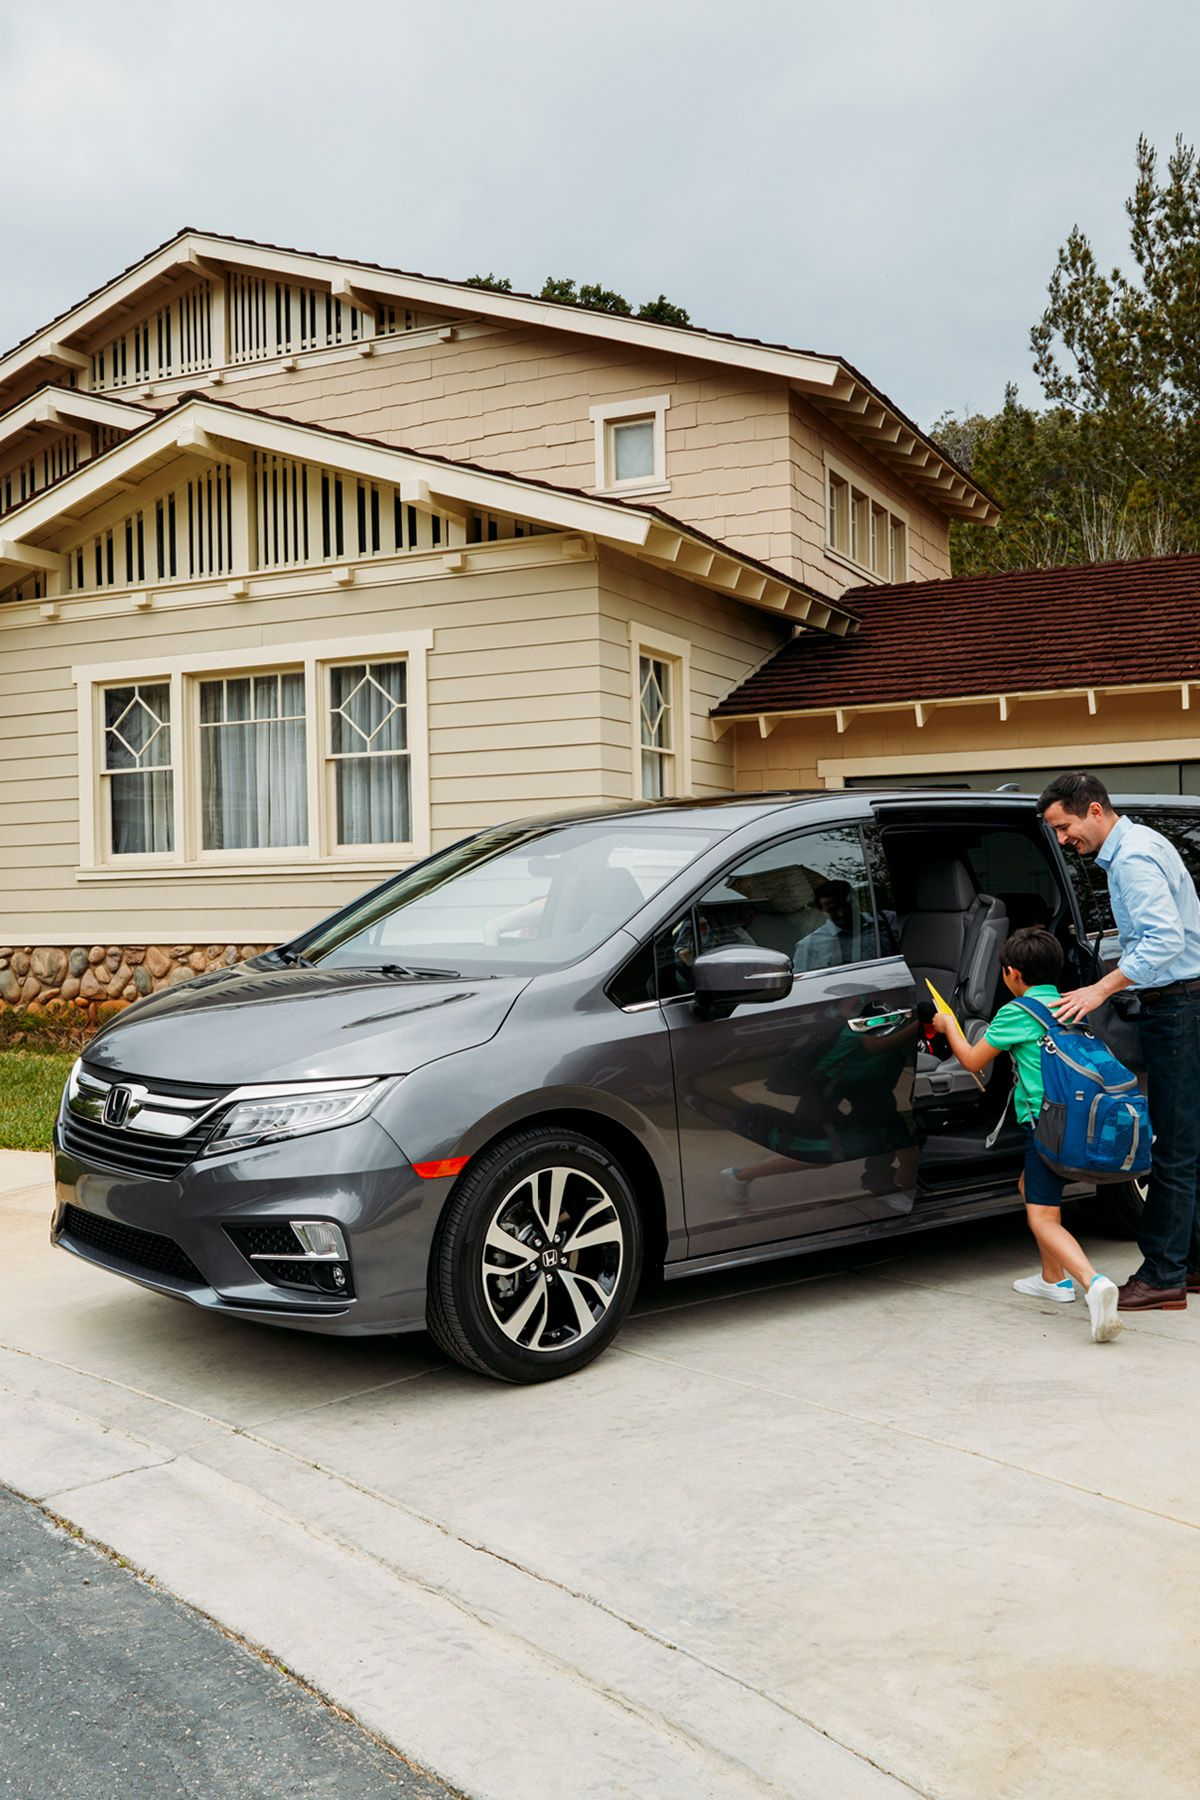 cb8811c65b8a63f0fba4644f1fbb0755 Interesting Info About 2007 Odyssey with Amusing Gallery Cars Review